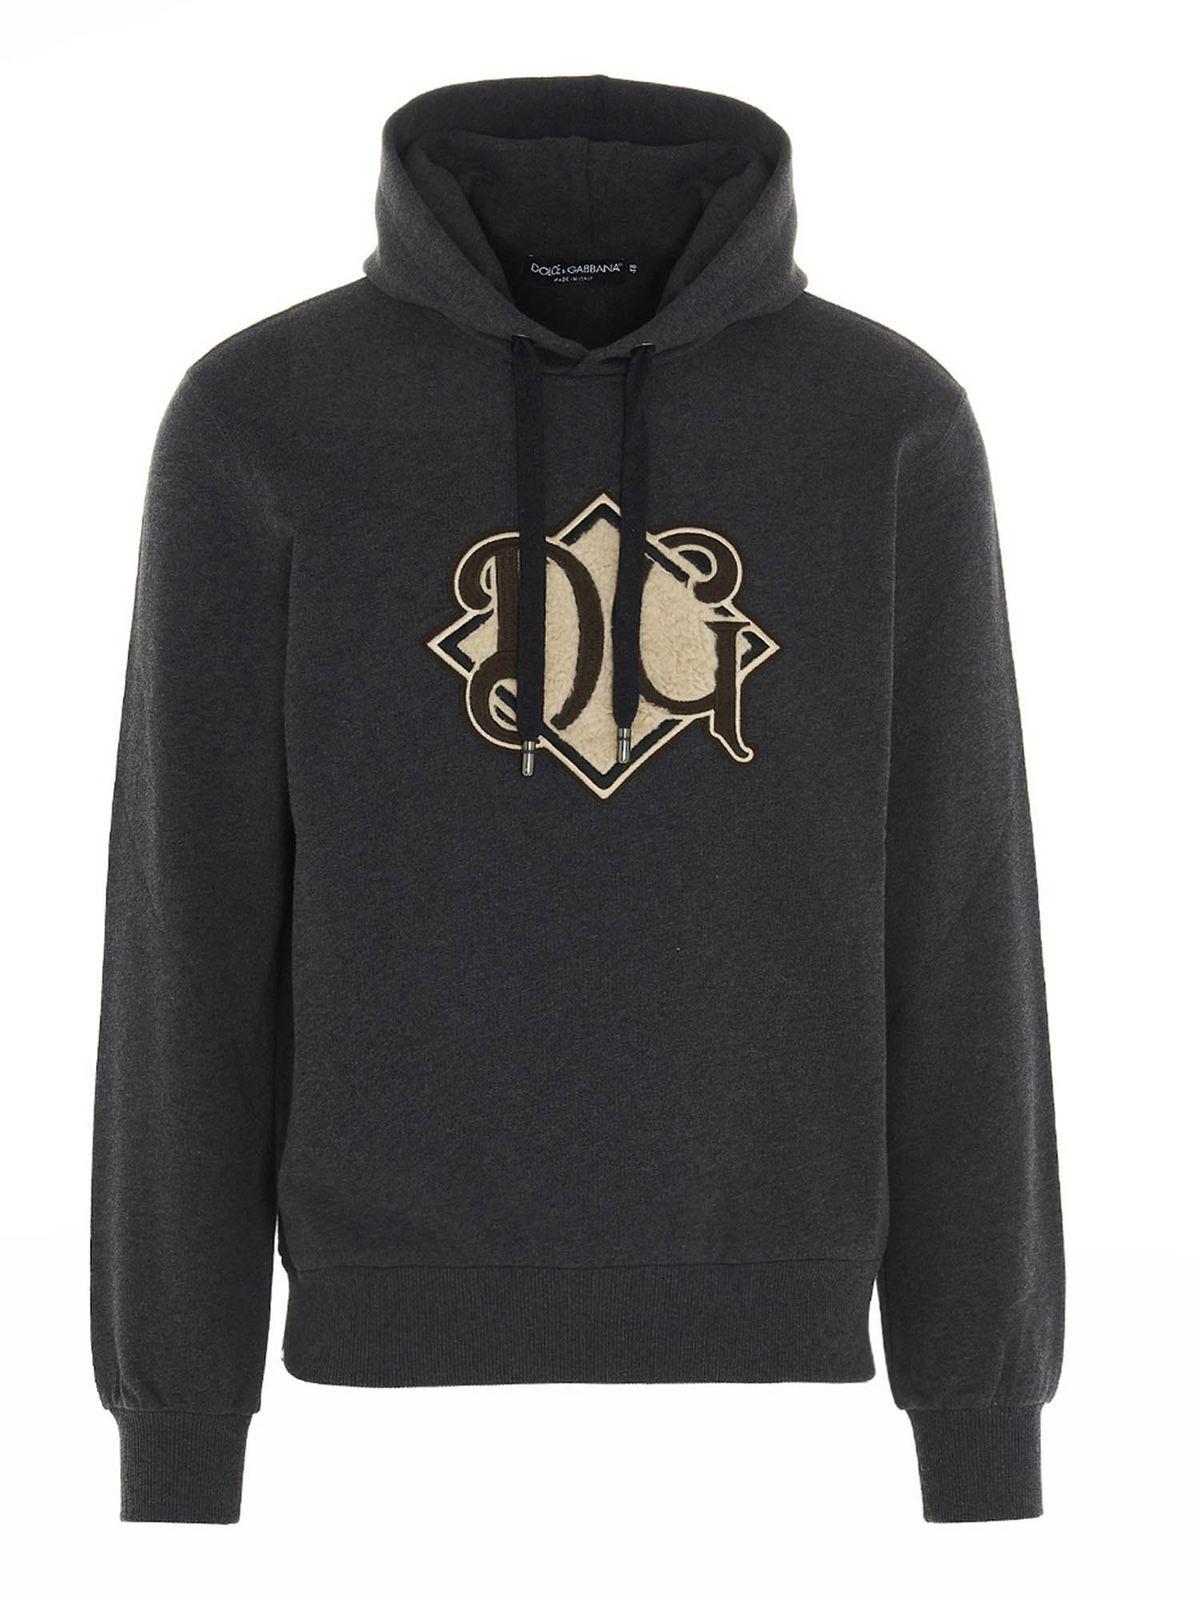 DOLCE & GABBANA LOGO PATCH HOODIE IN GREY